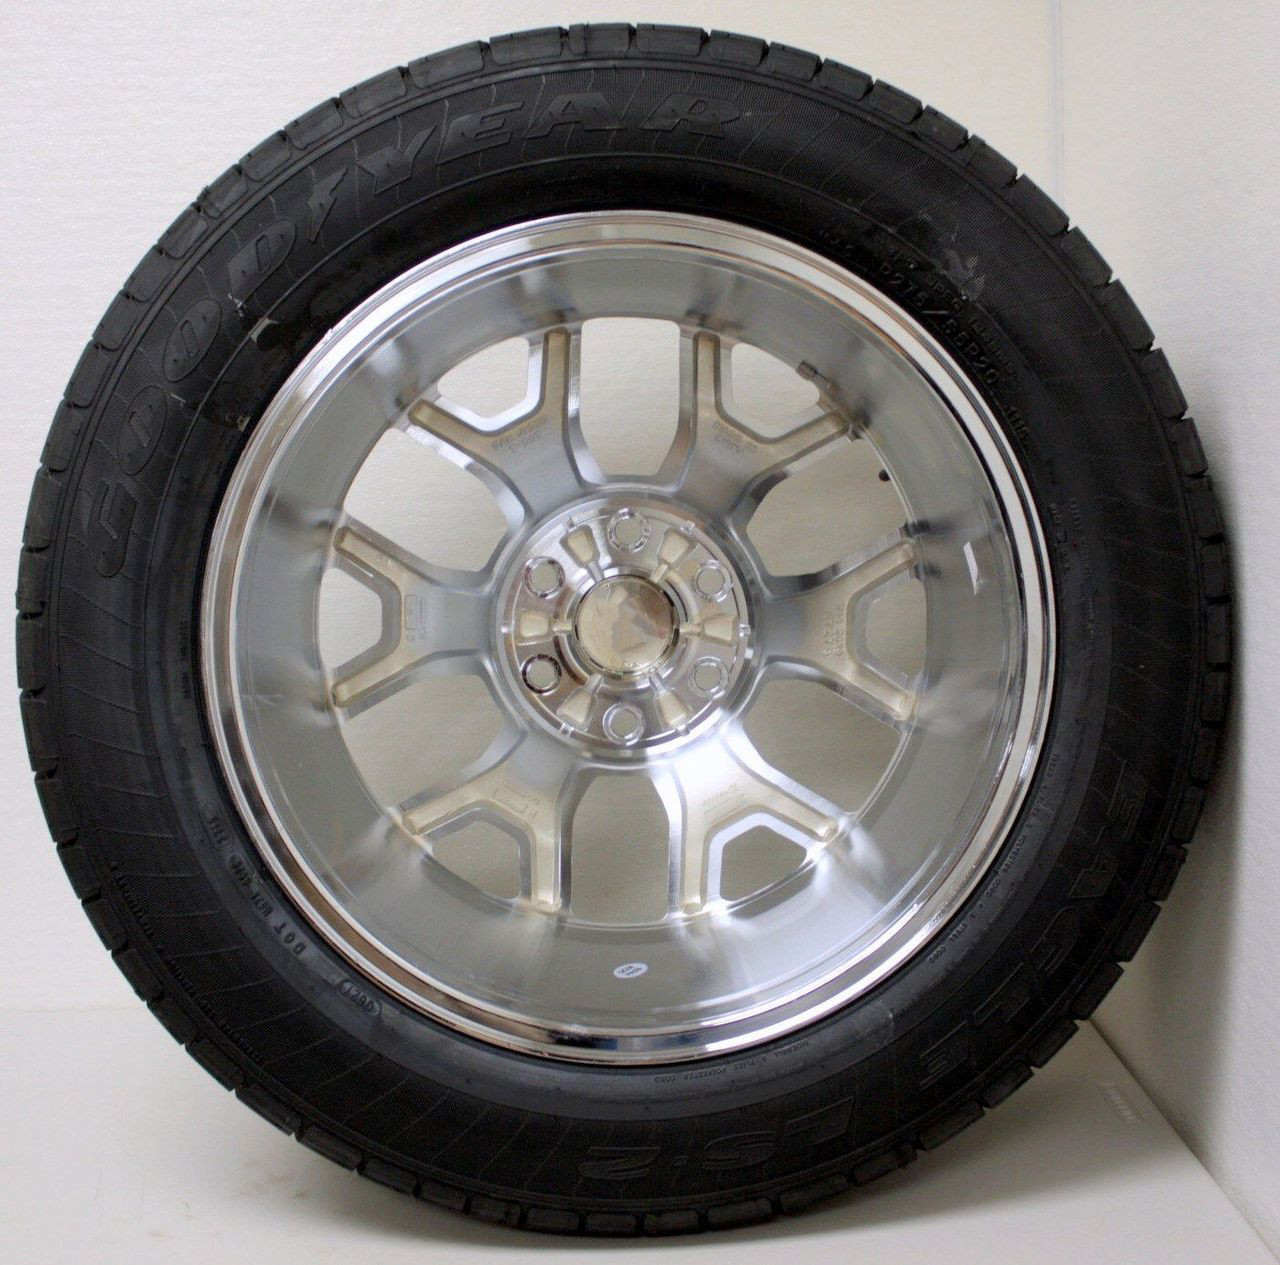 """Chrome 20"""" Honeycomb Wheels with Goodyear Tires for Chevy Silverado, Tahoe, Suburban - New Set of 4"""